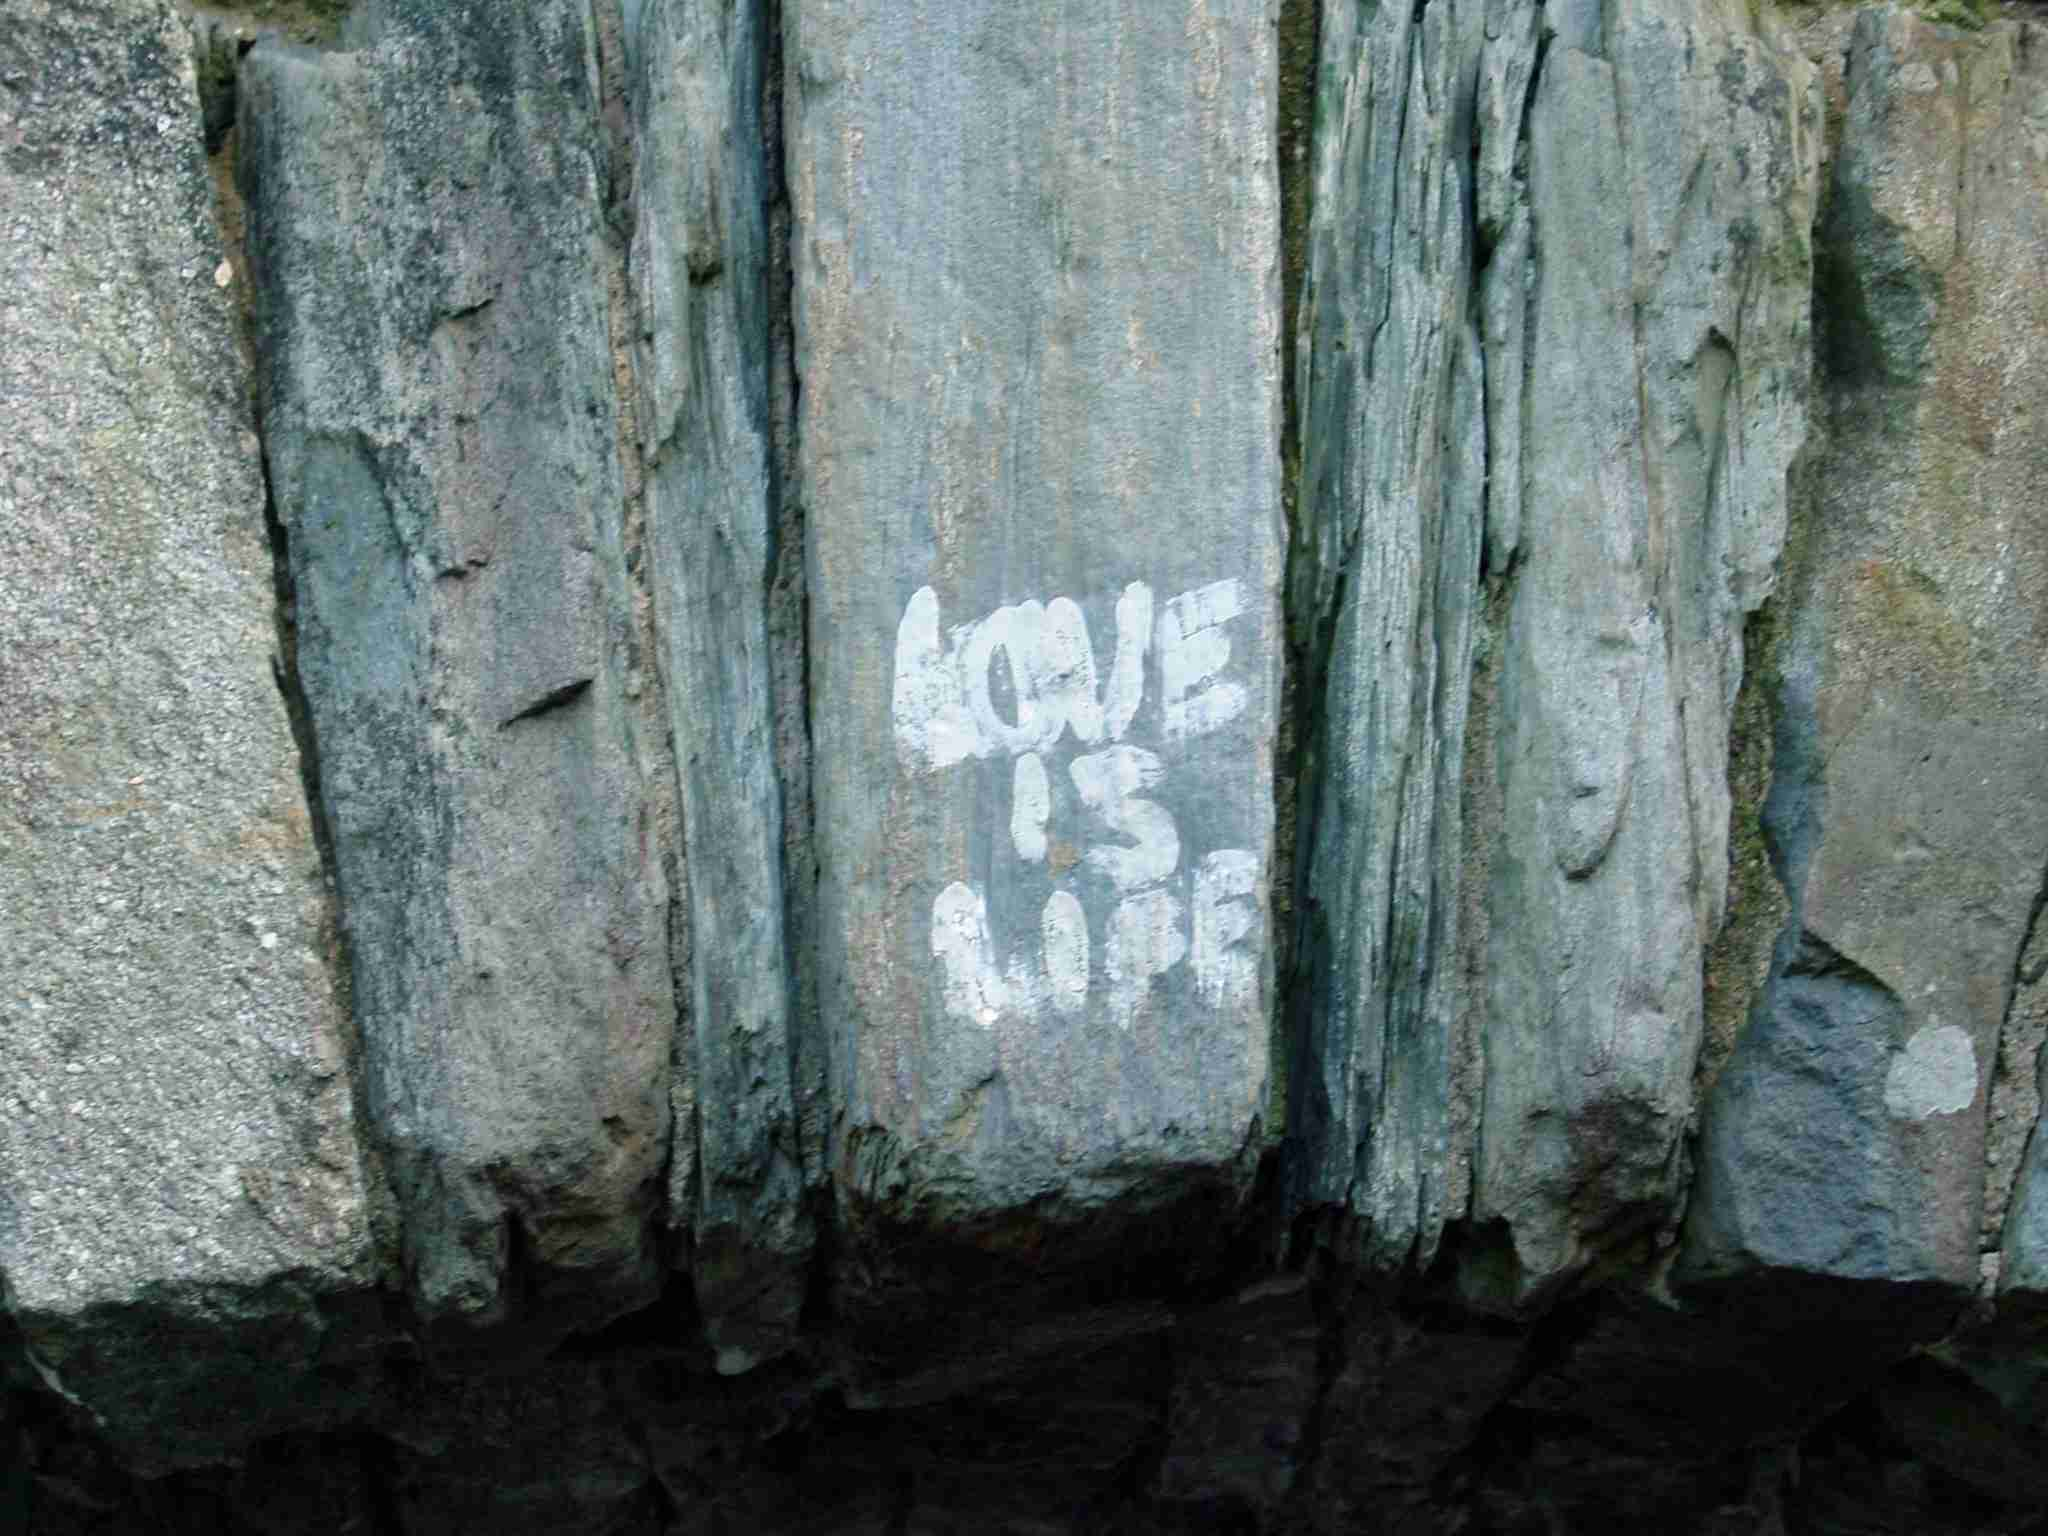 Love is Life - Finding Meaning Along Newport's Cliff Walk